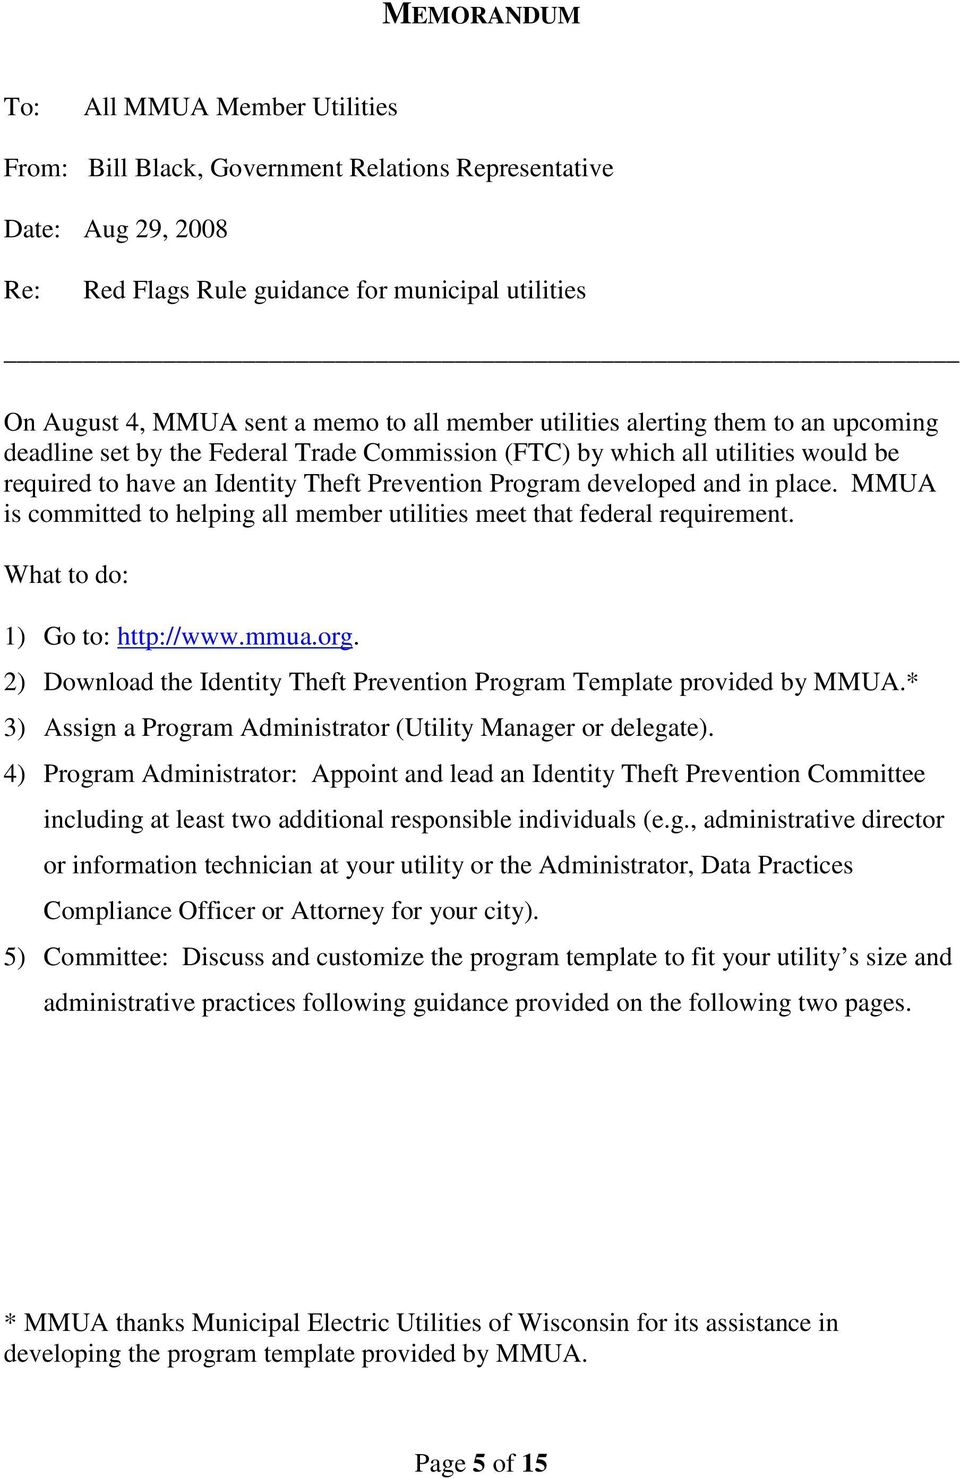 and in place. MMUA is committed to helping all member utilities meet that federal requirement. What to do: 1) Go to: http://www.mmua.org.